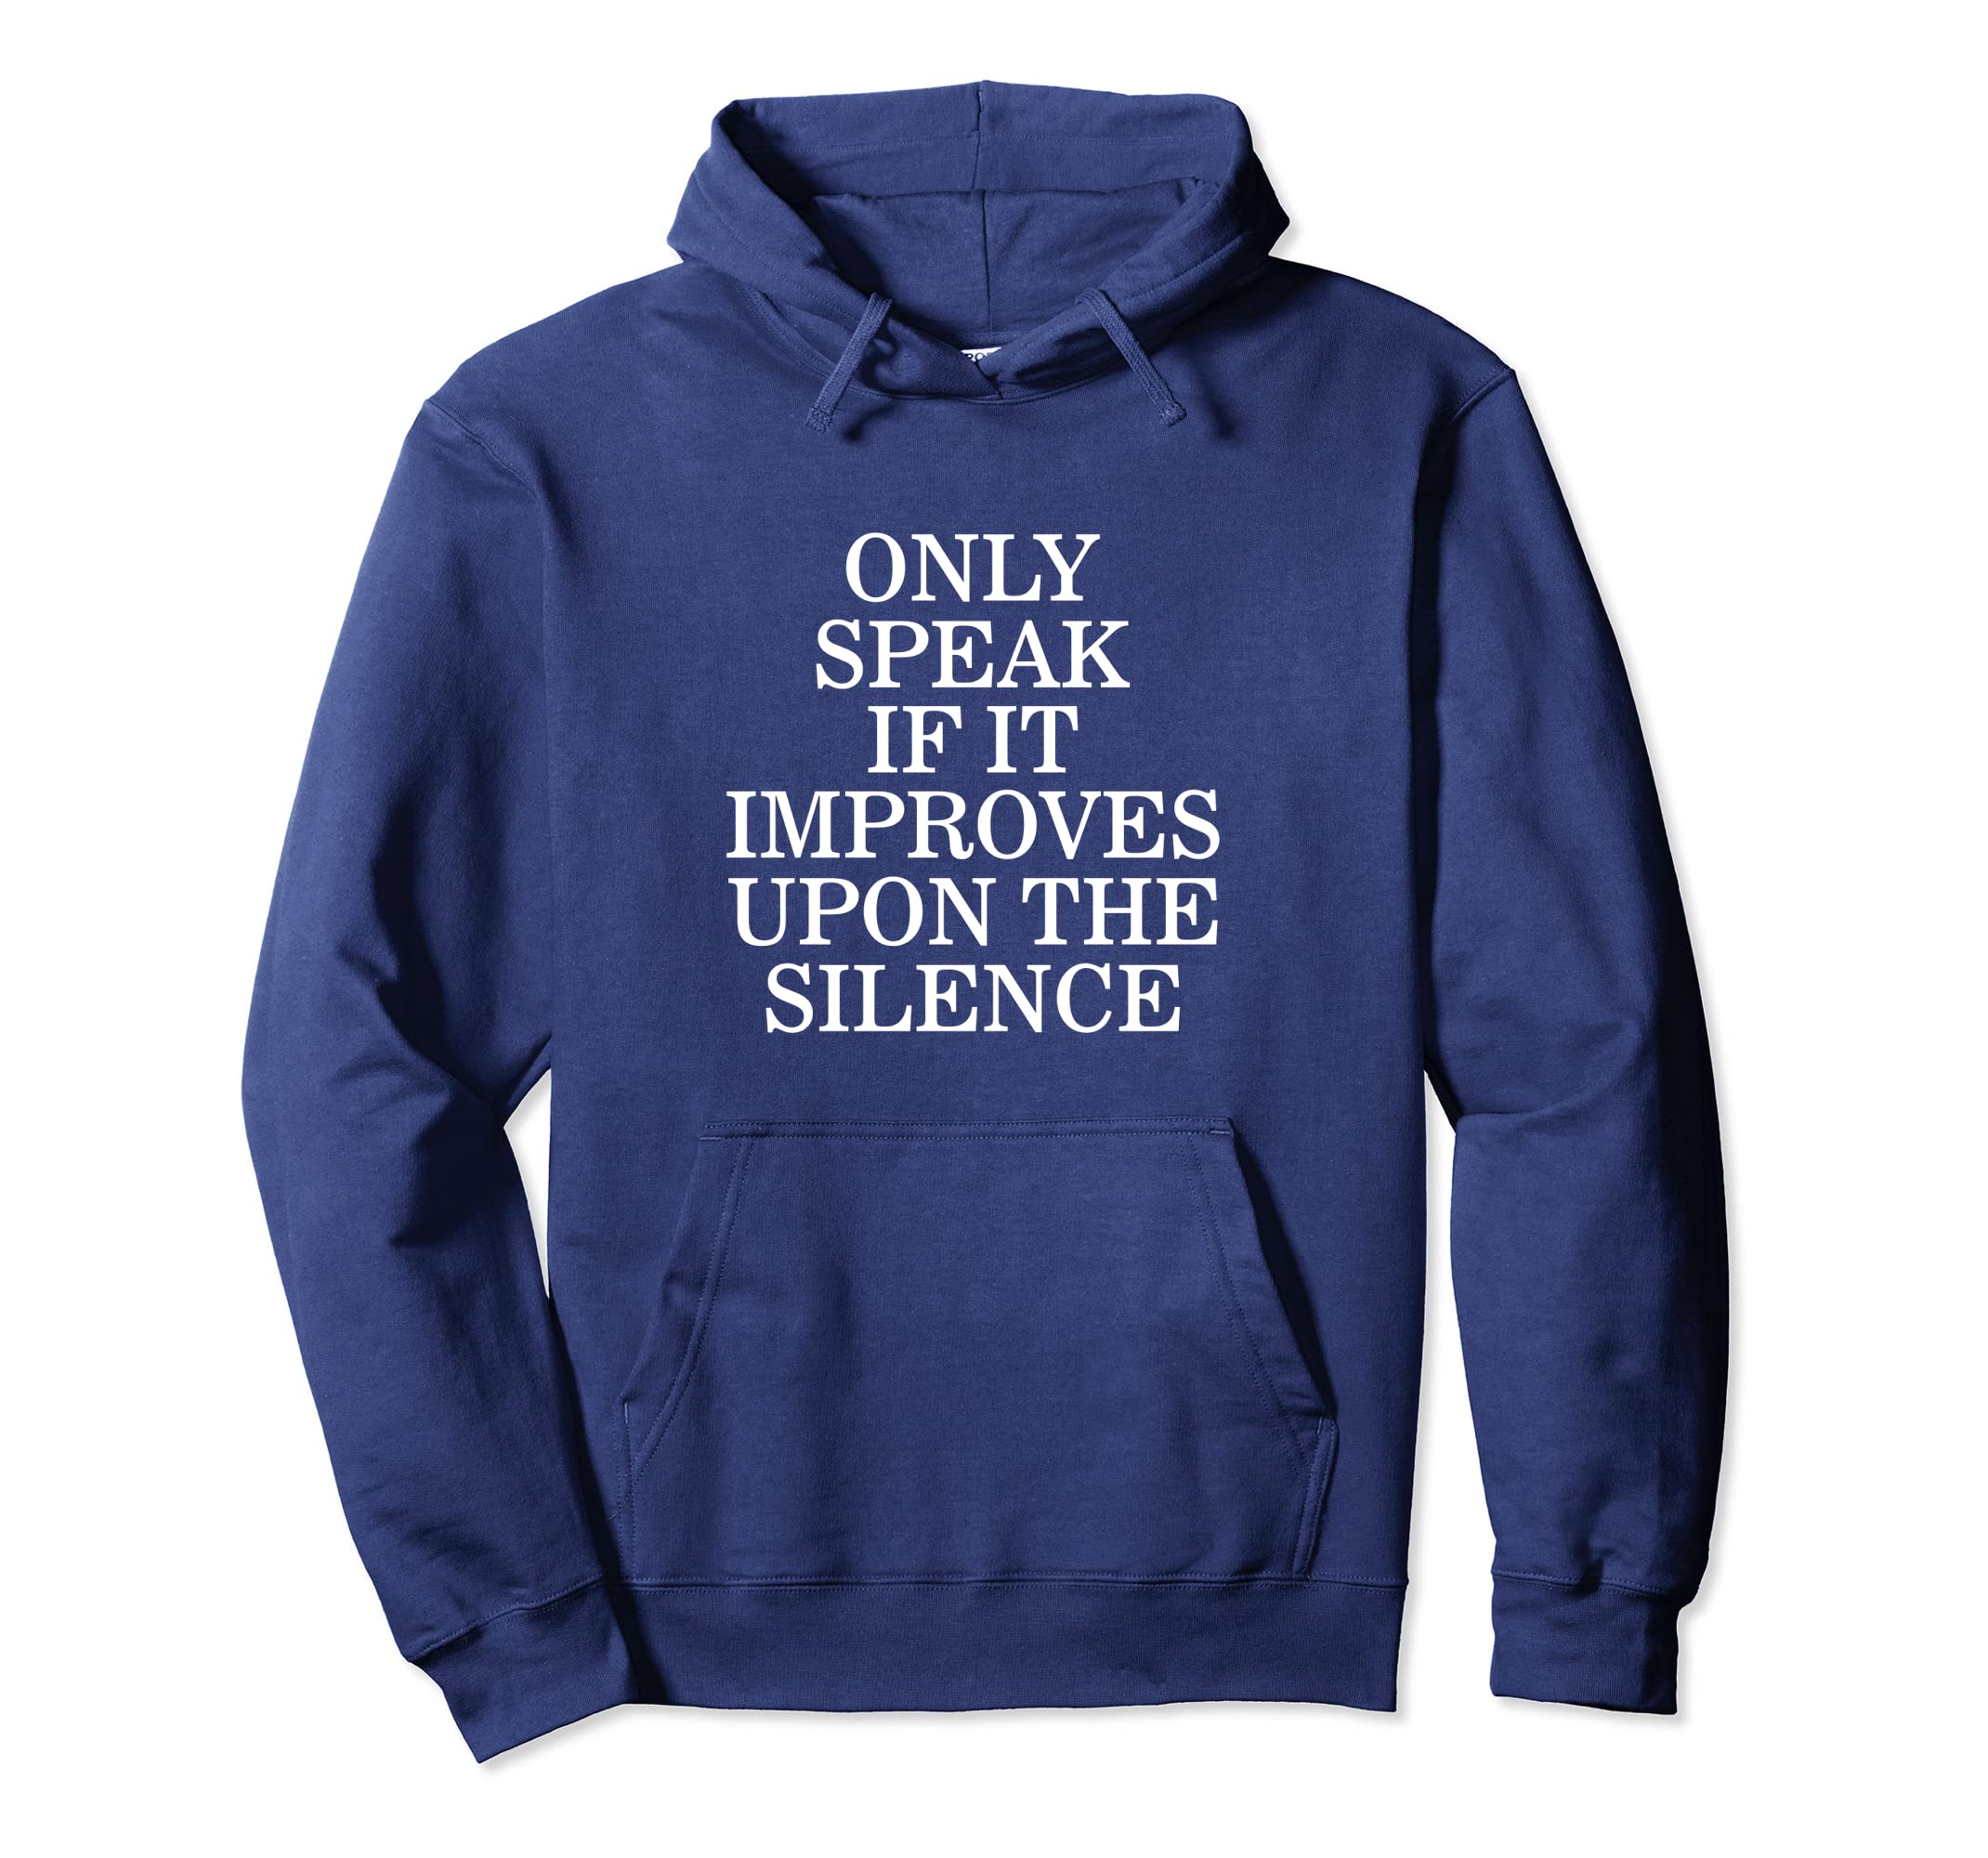 Amazoncom Only Speak If It Improves Upon The Silence Hoodie Clothing